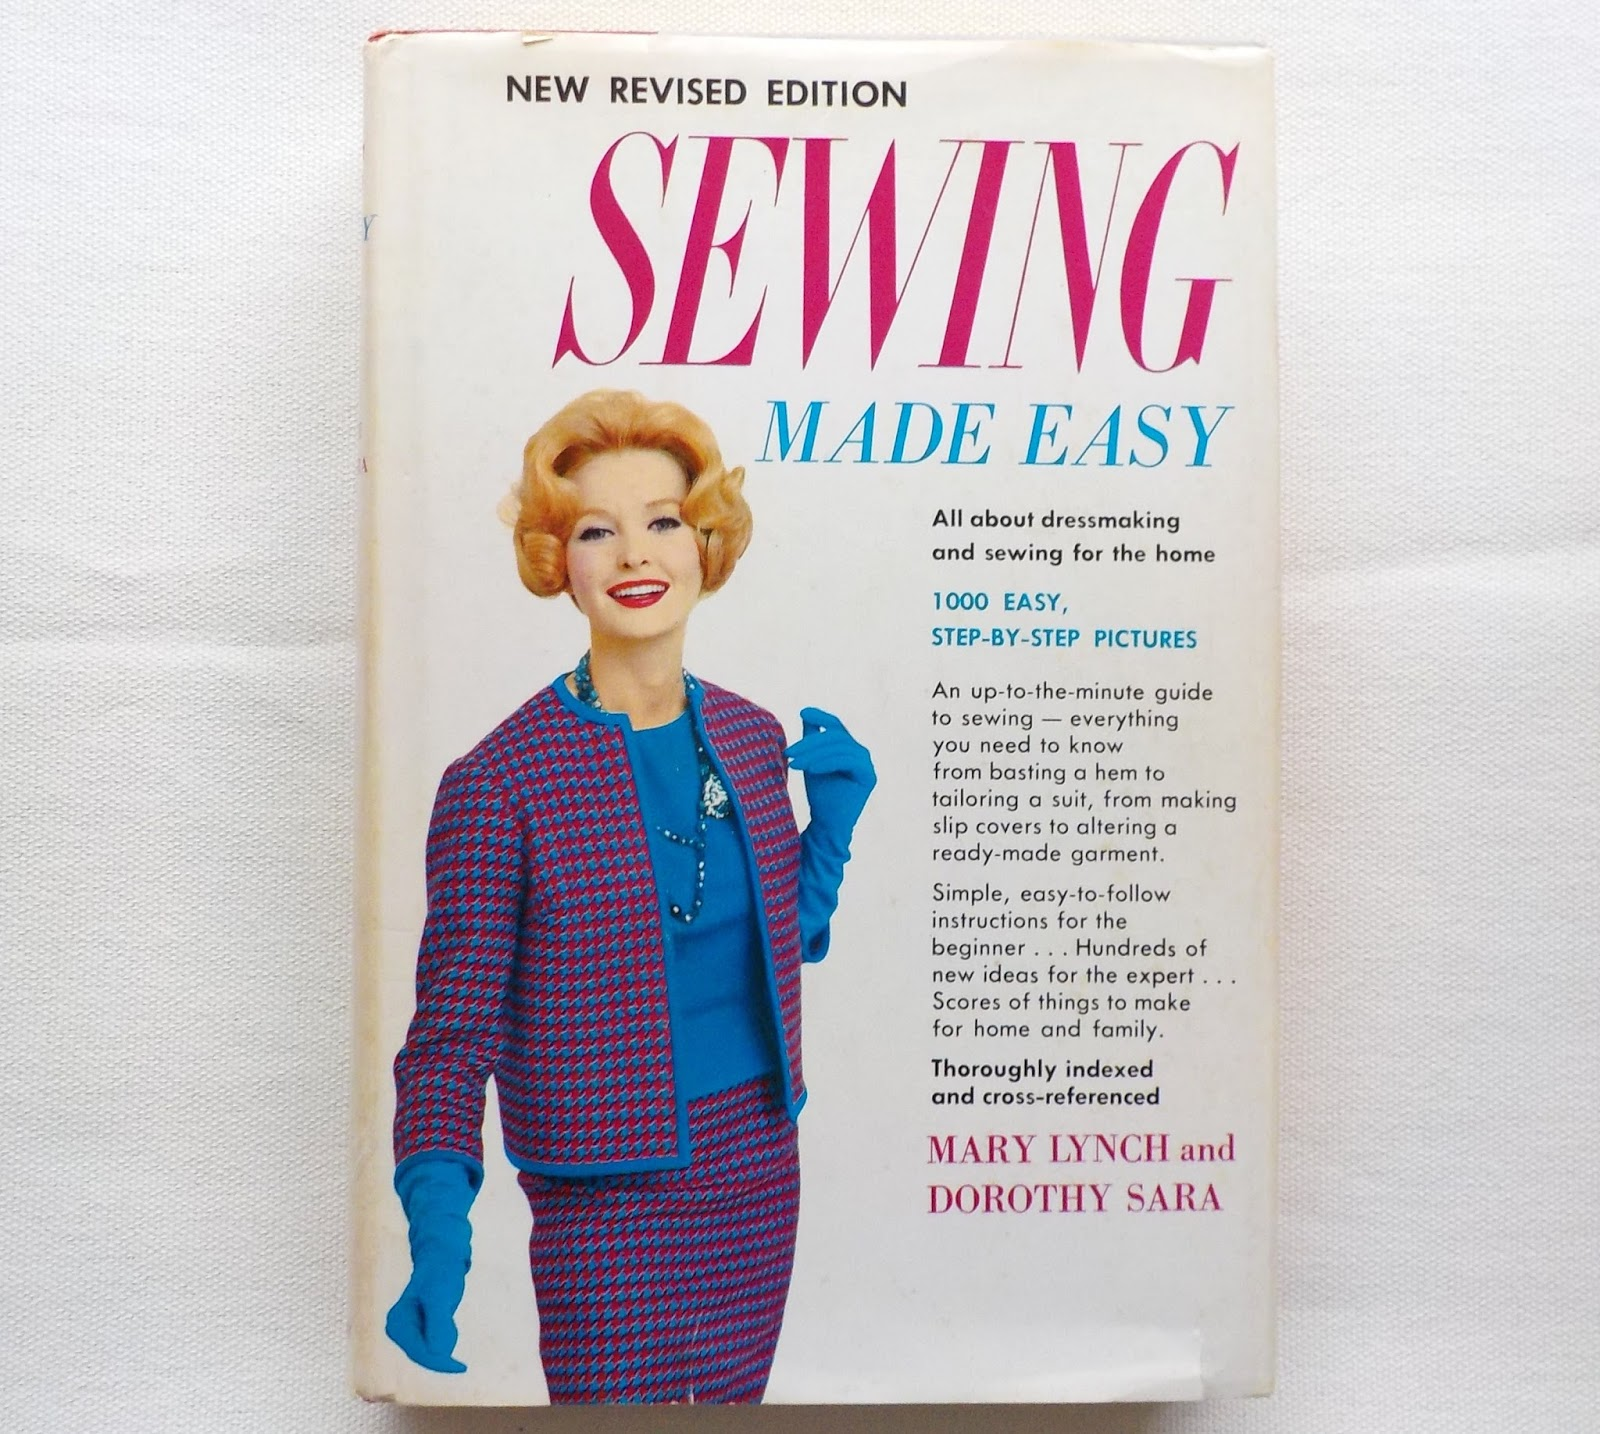 OnePerfectDay: Sewing Made Easy by Mary Lynch and Dorothy Sara